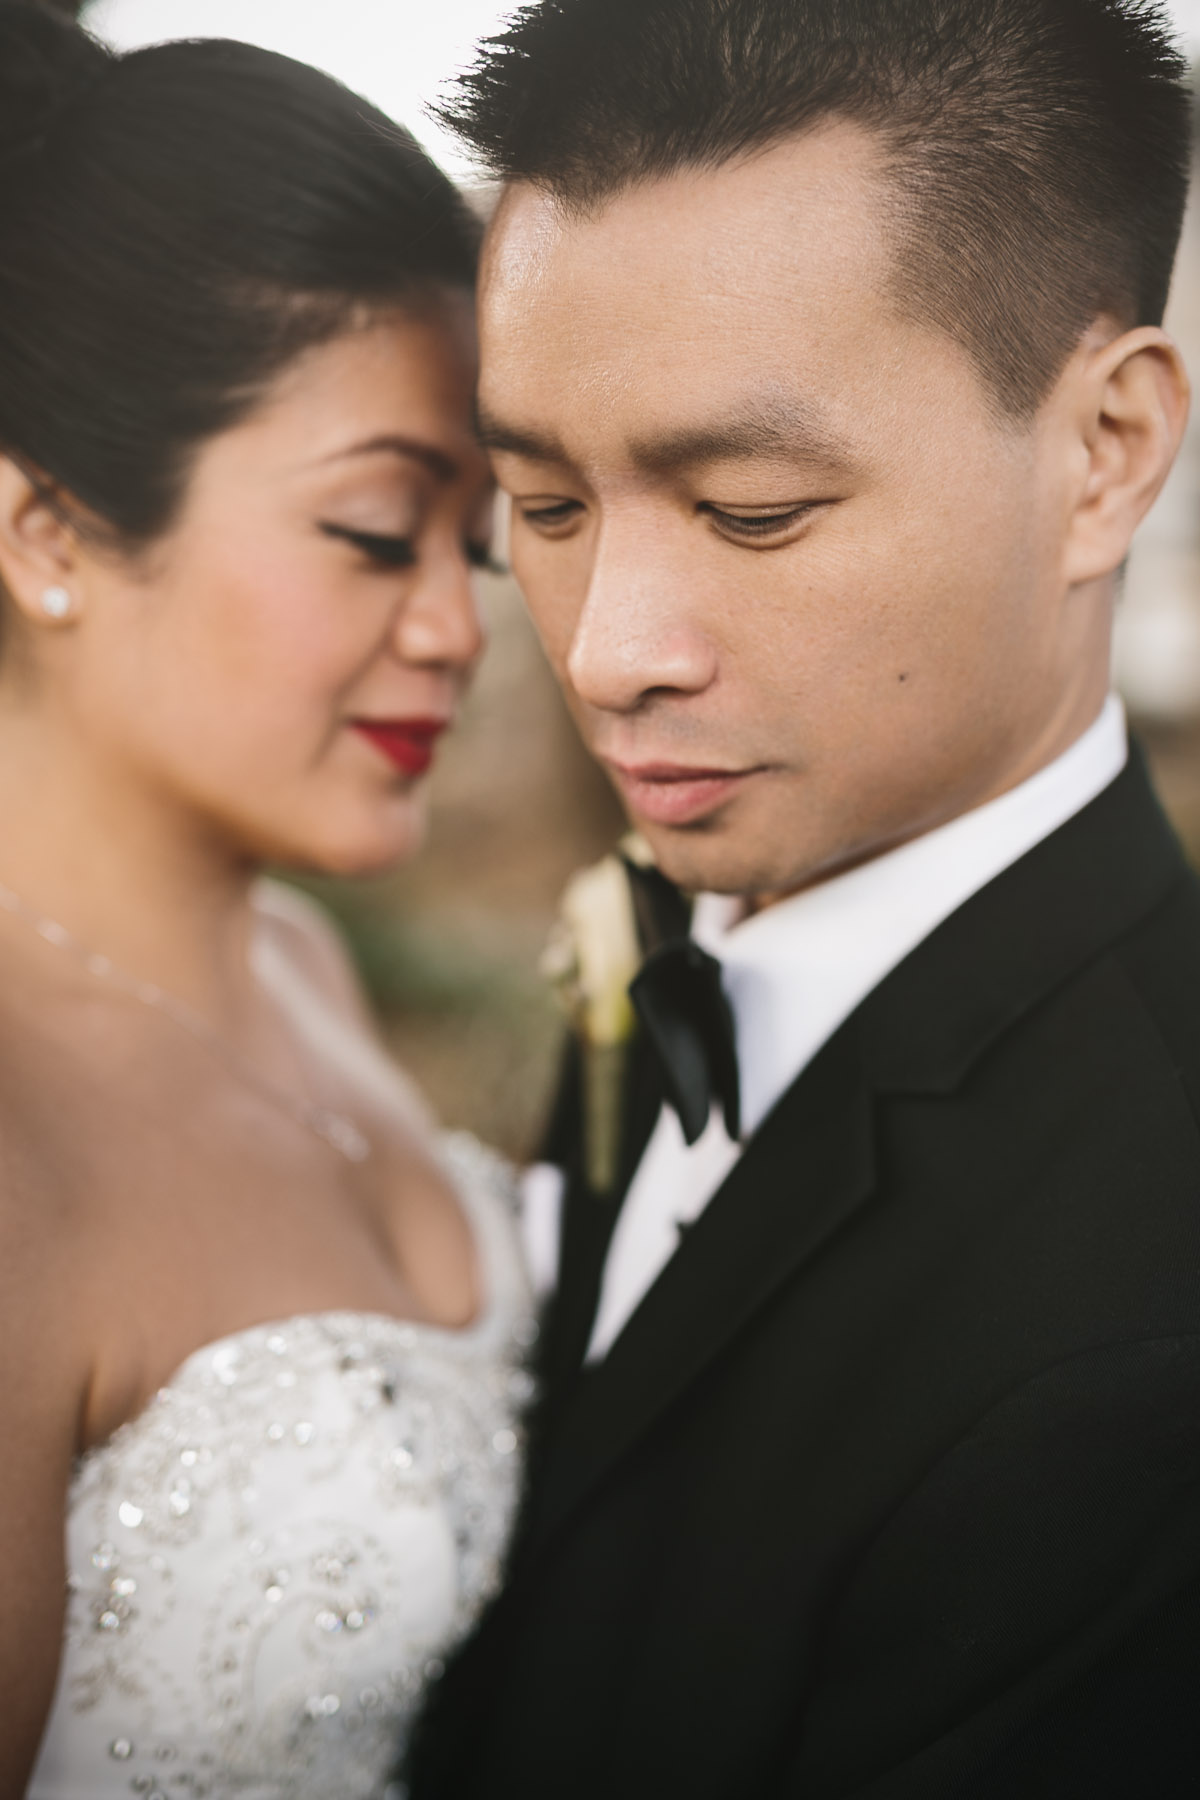 bride and groom portrait vancouver wedding photography